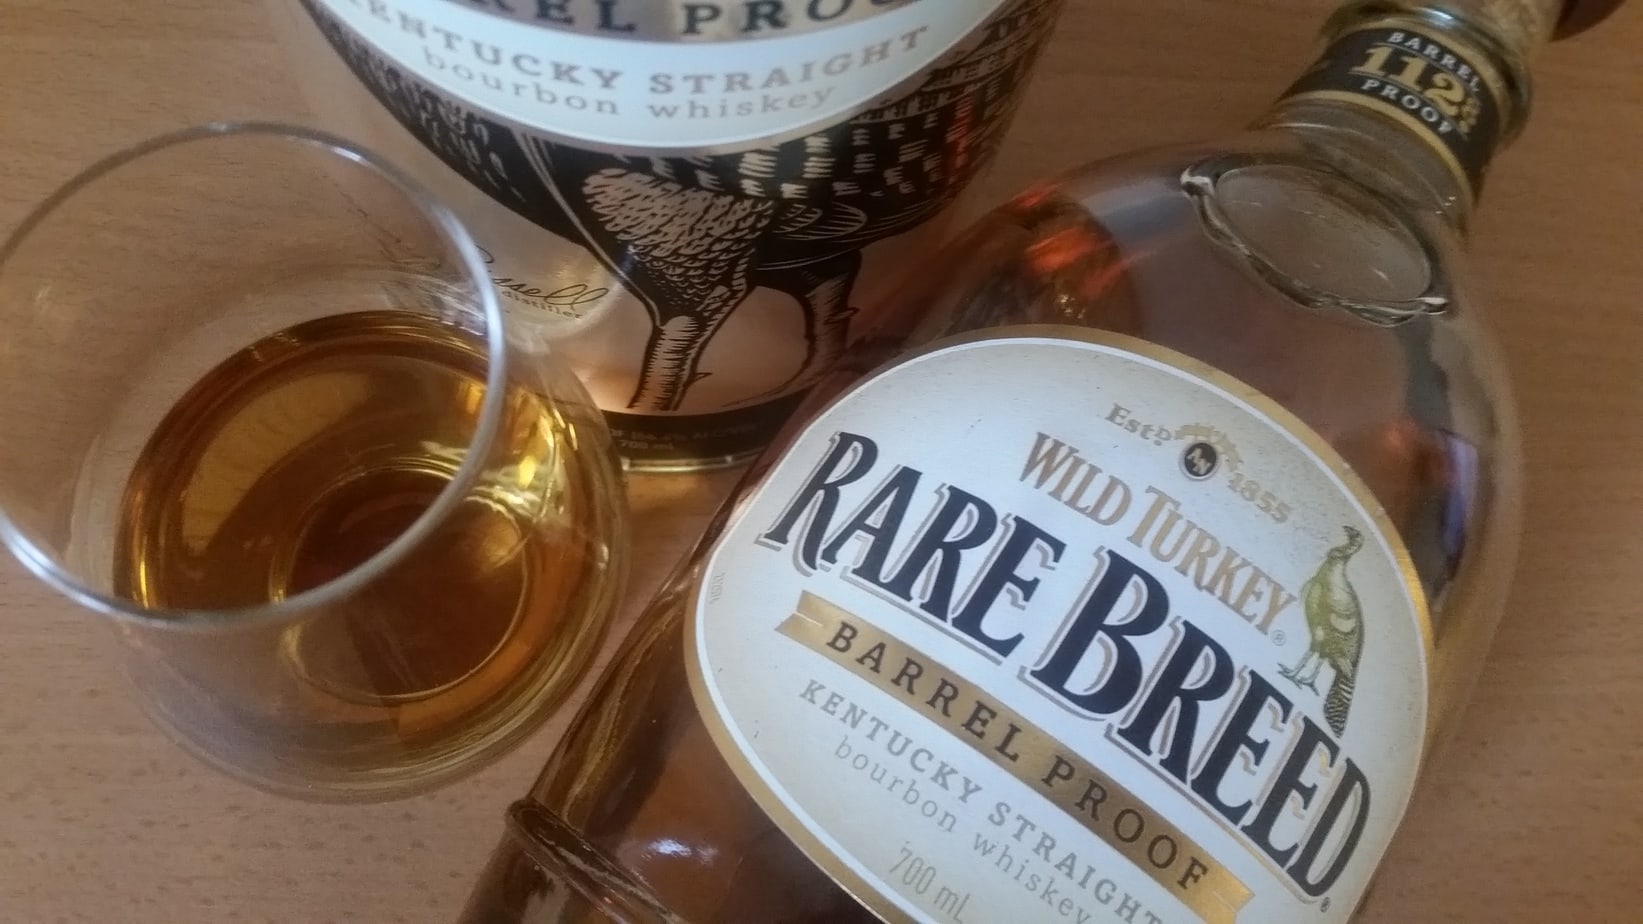 A bottle and glass of Wild Turkey Rare Breed